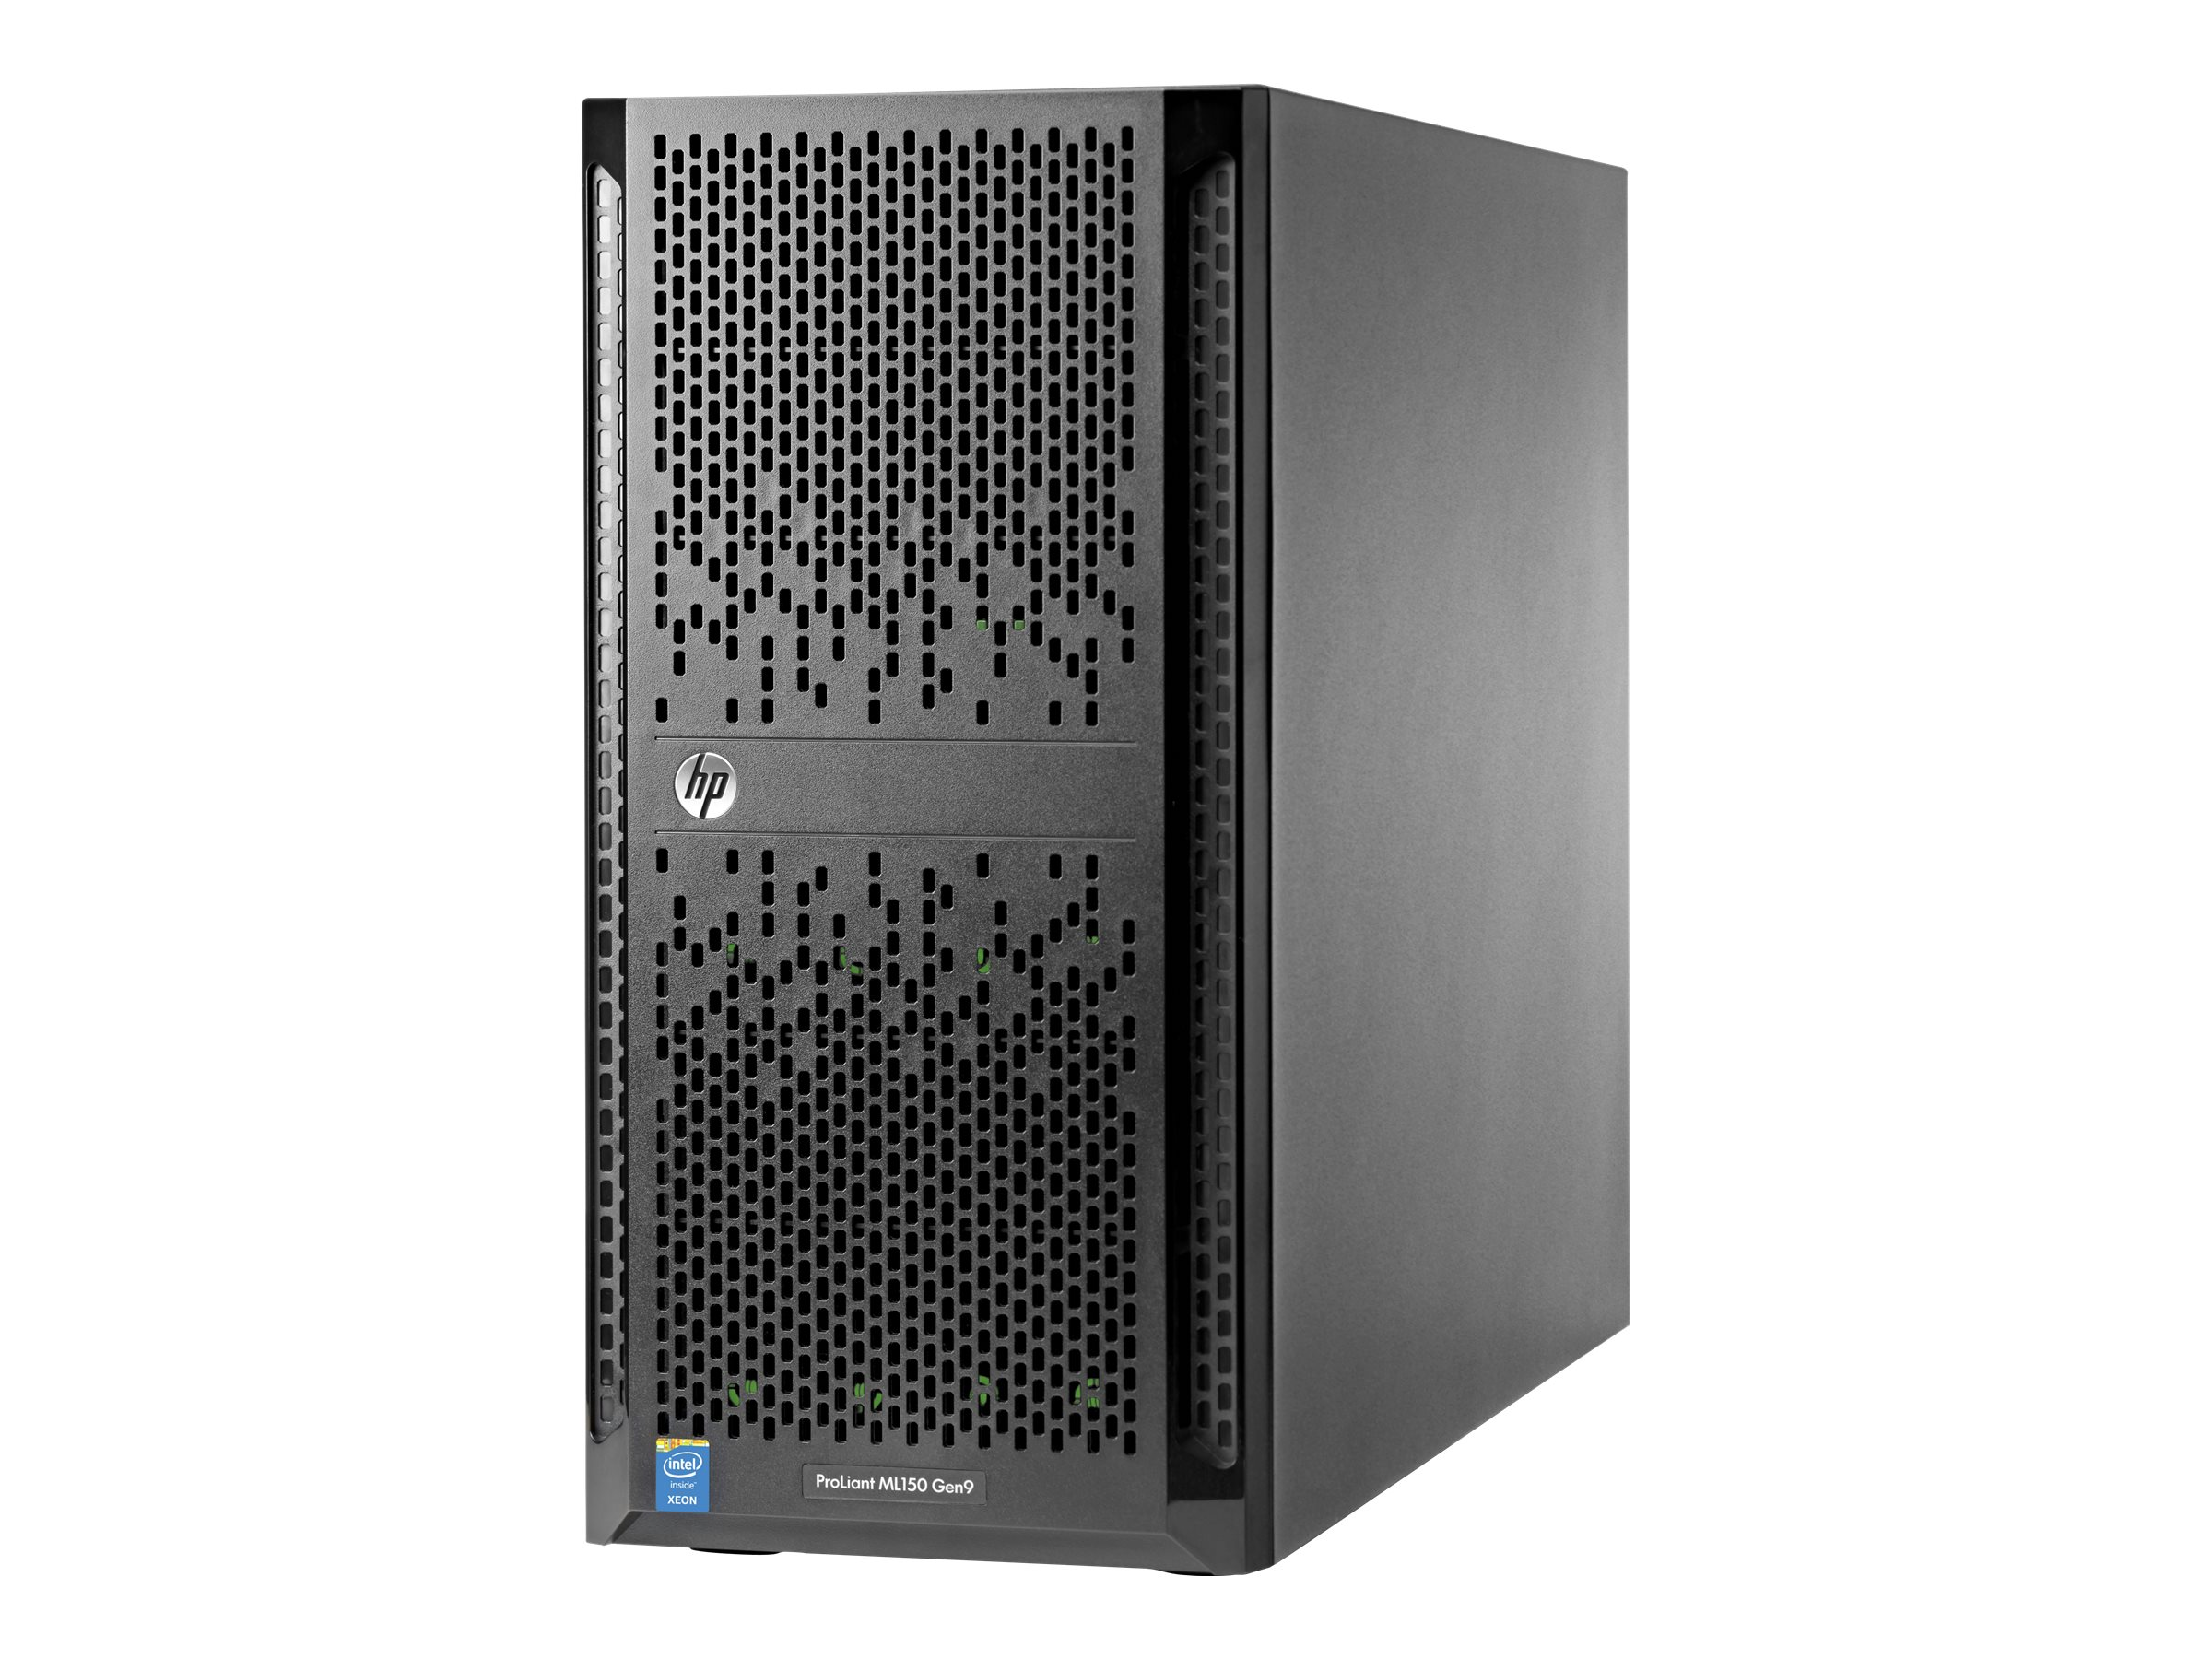 HPE ProLiant ML150 Gen9 Intel 1.7GHz Xeon